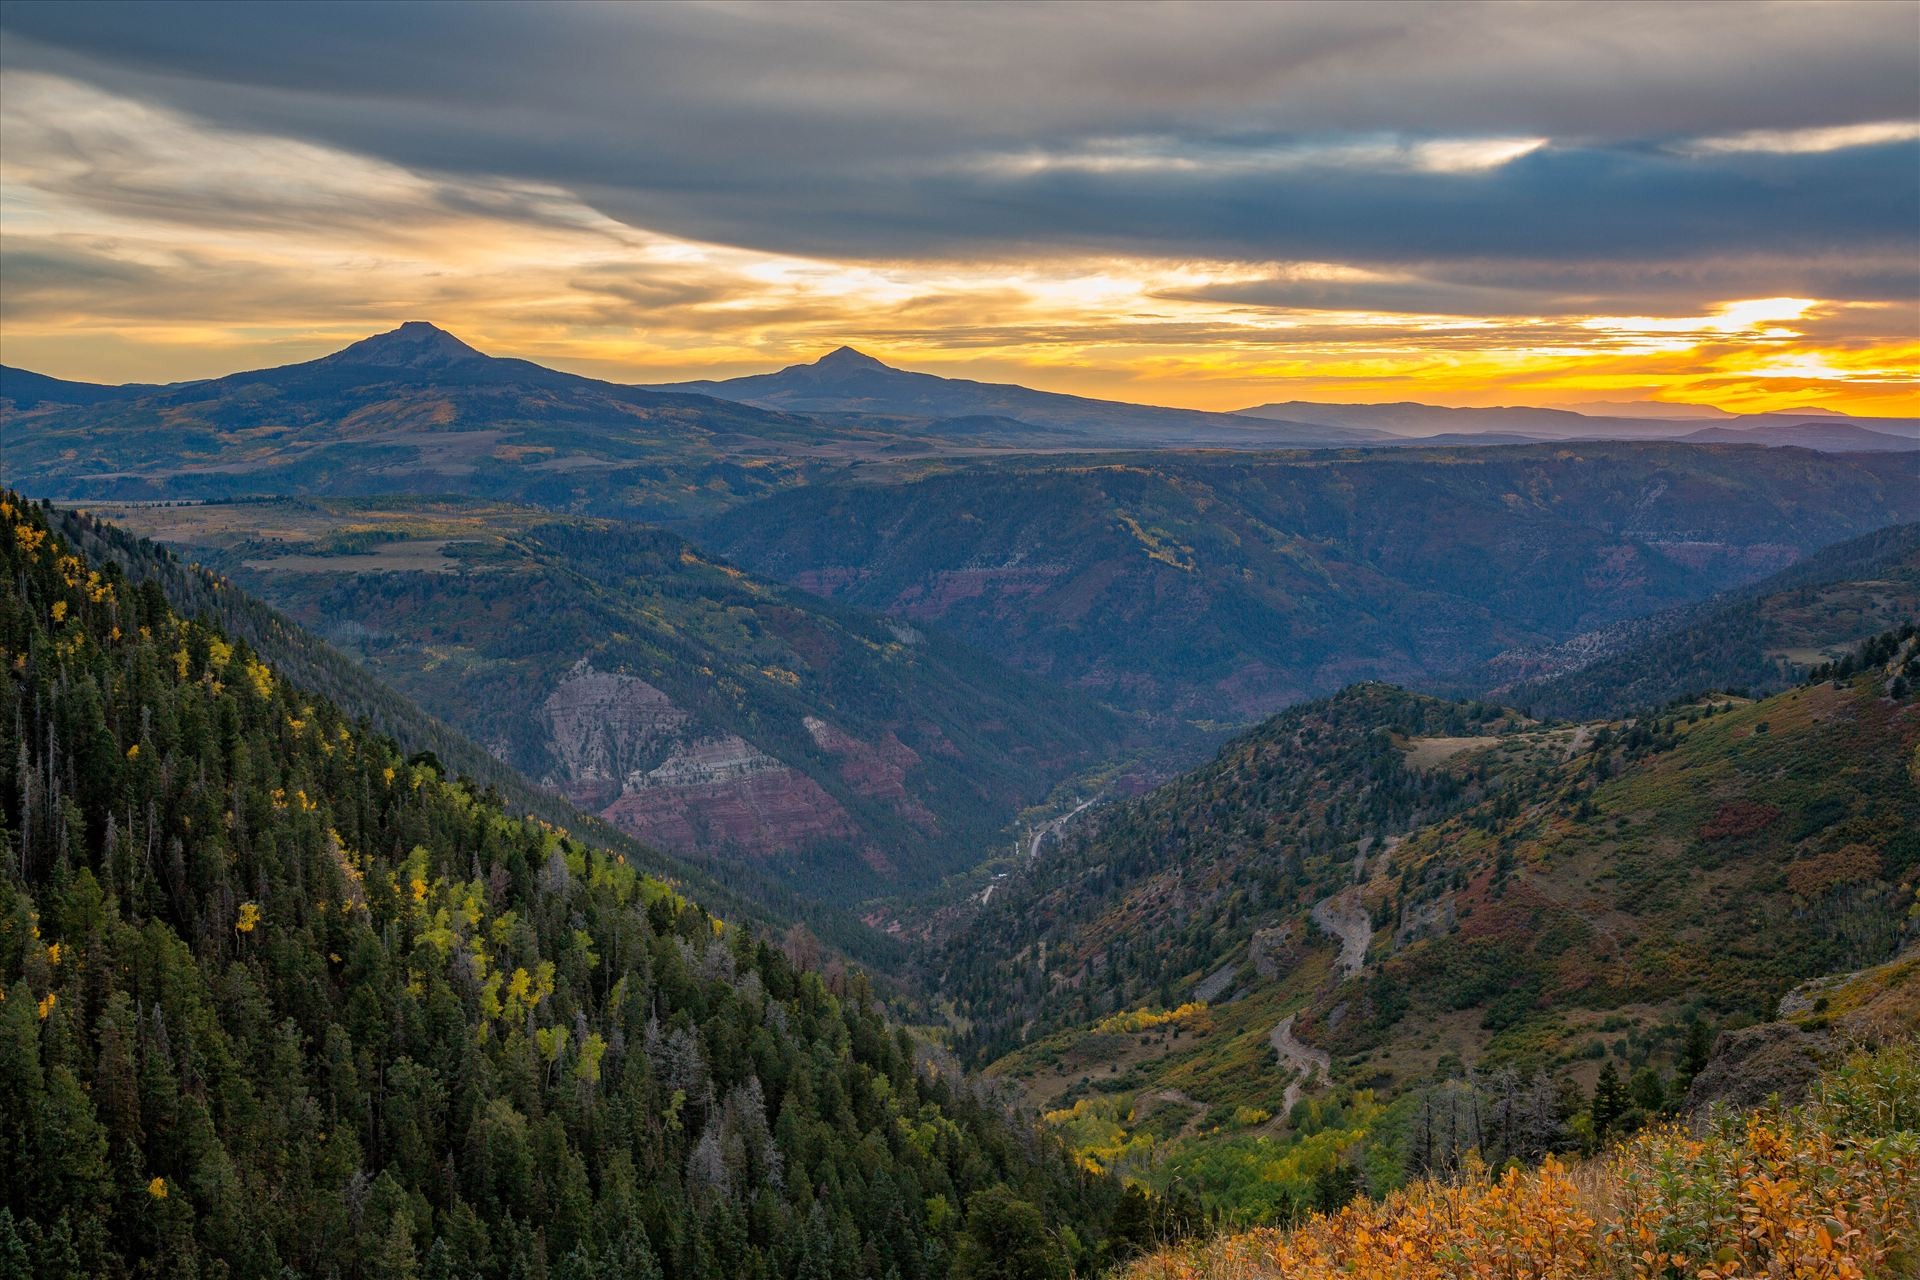 Last Dollar Road Sunset 2 - The sun has almost faded on a quiet, secluded spot from Last Dollar Road, outside of Telluride, Colorado in the fall. by D Scott Smith